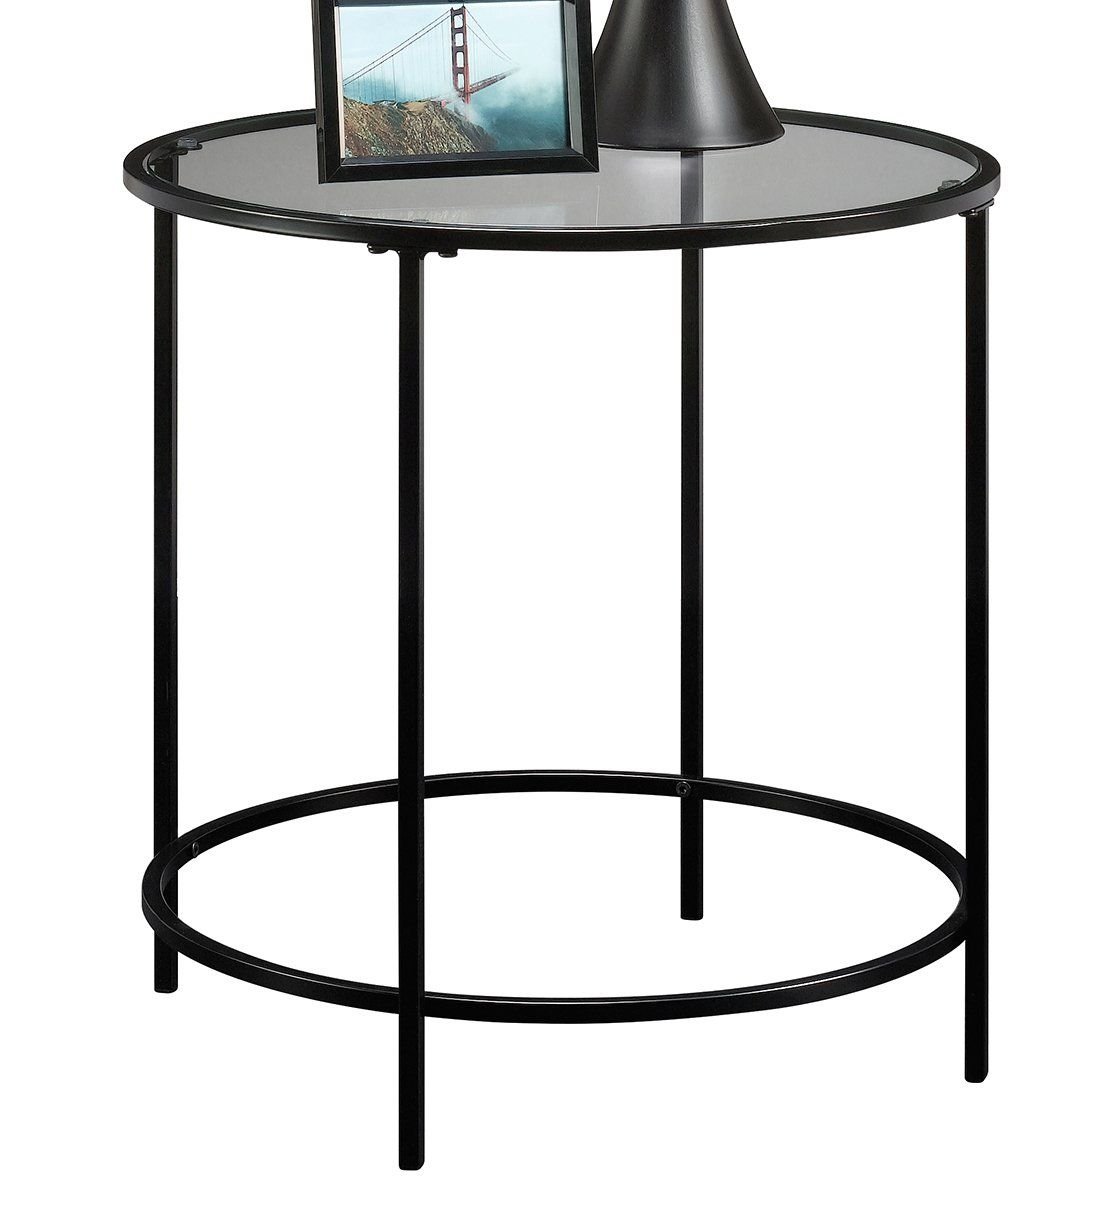 Sauder Soft Modern Round End Side Table Black Clear Glass See This Great Product It Is Amazon Af Round Coffee Table Living Room Black Side Table Side Table [ 1208 x 1104 Pixel ]